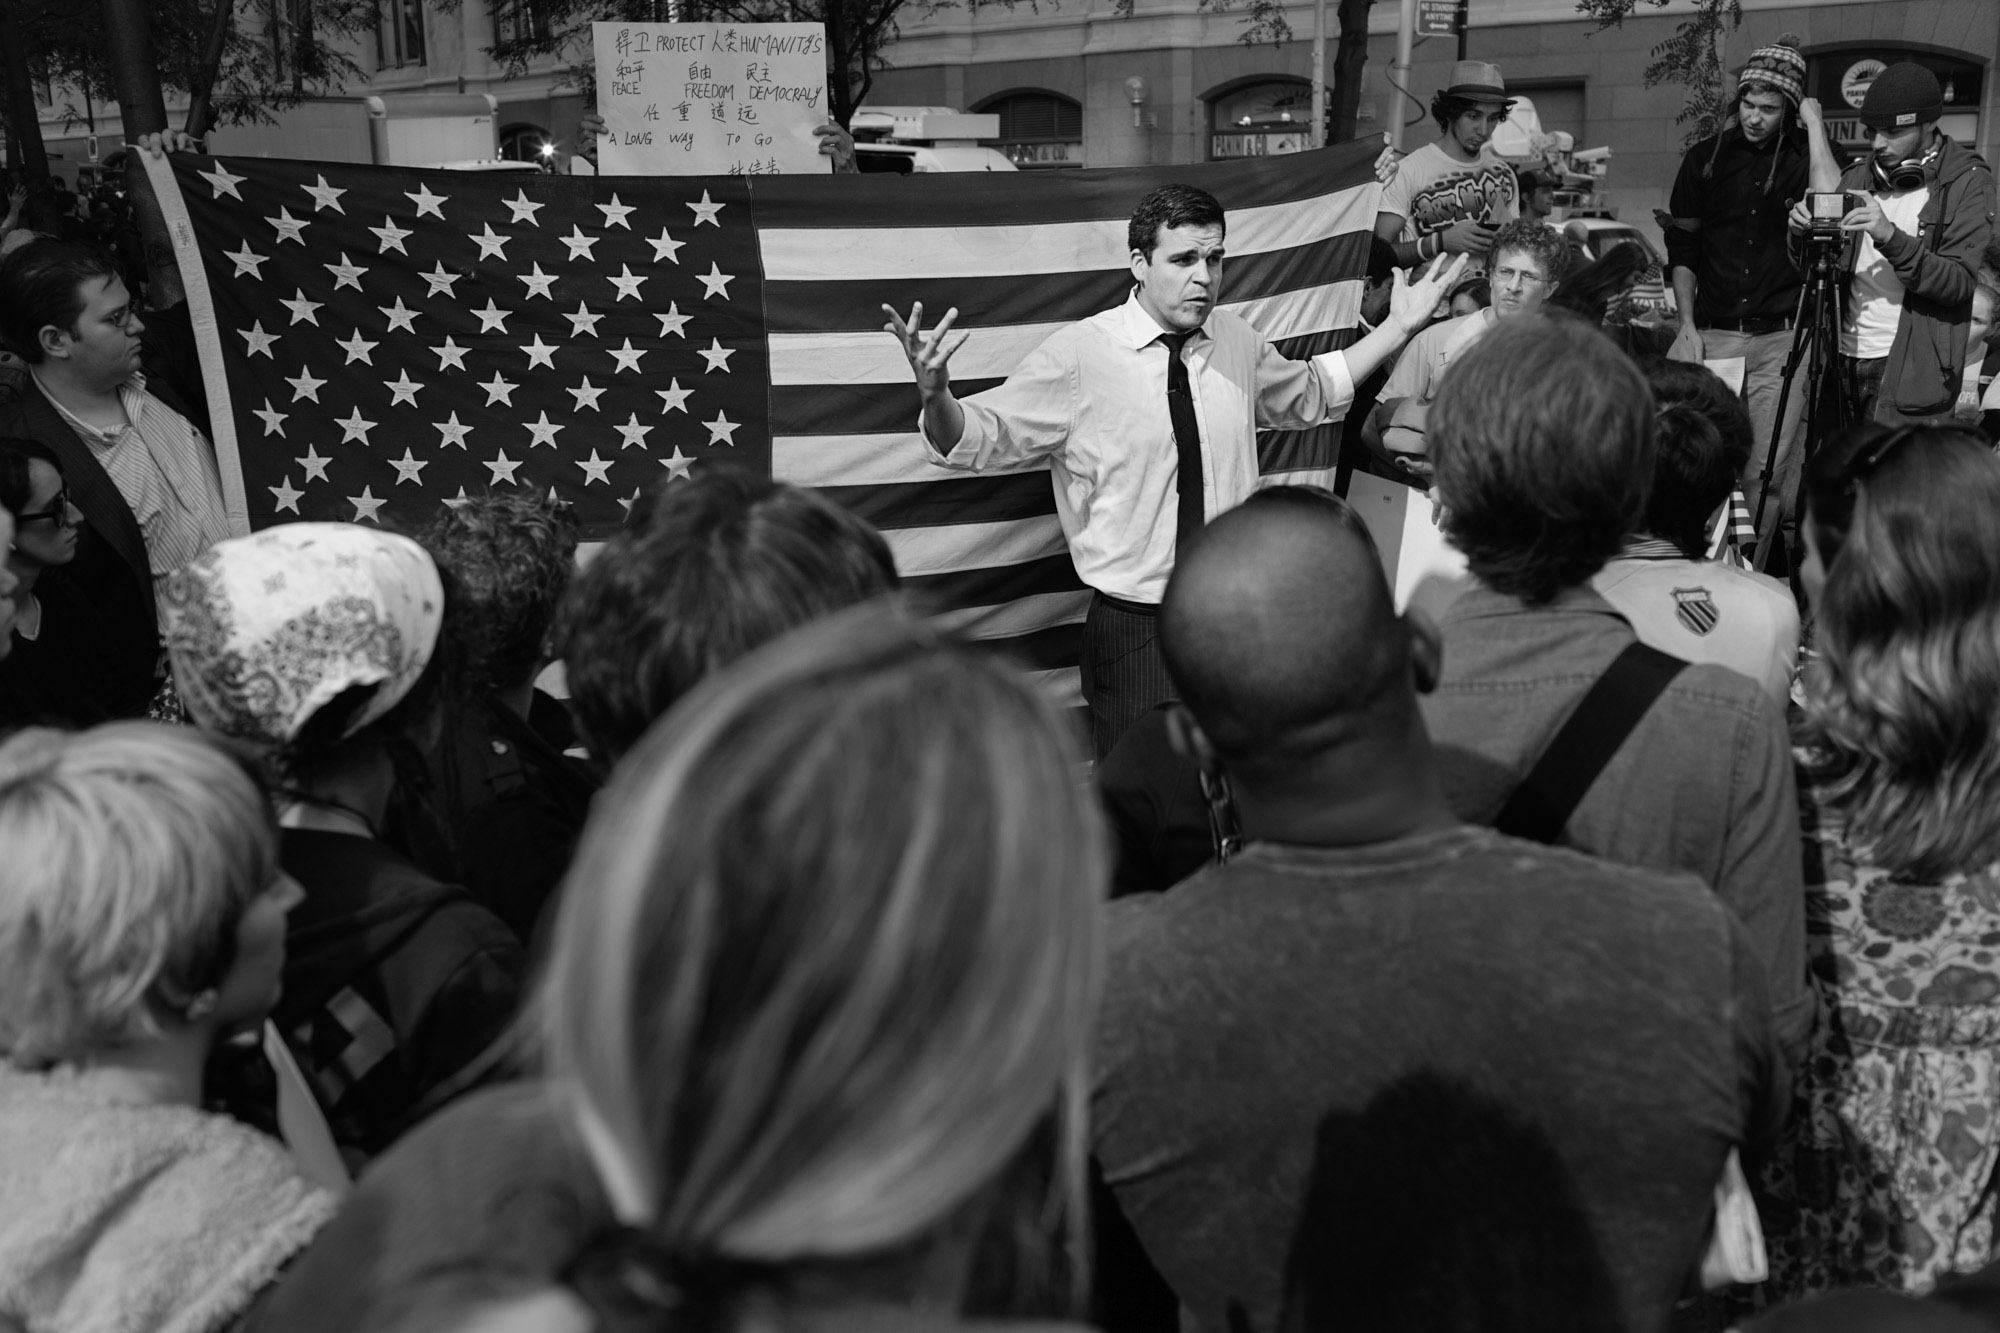 A man delivers a political speech to anyone who will listen at Zuccotti Park.